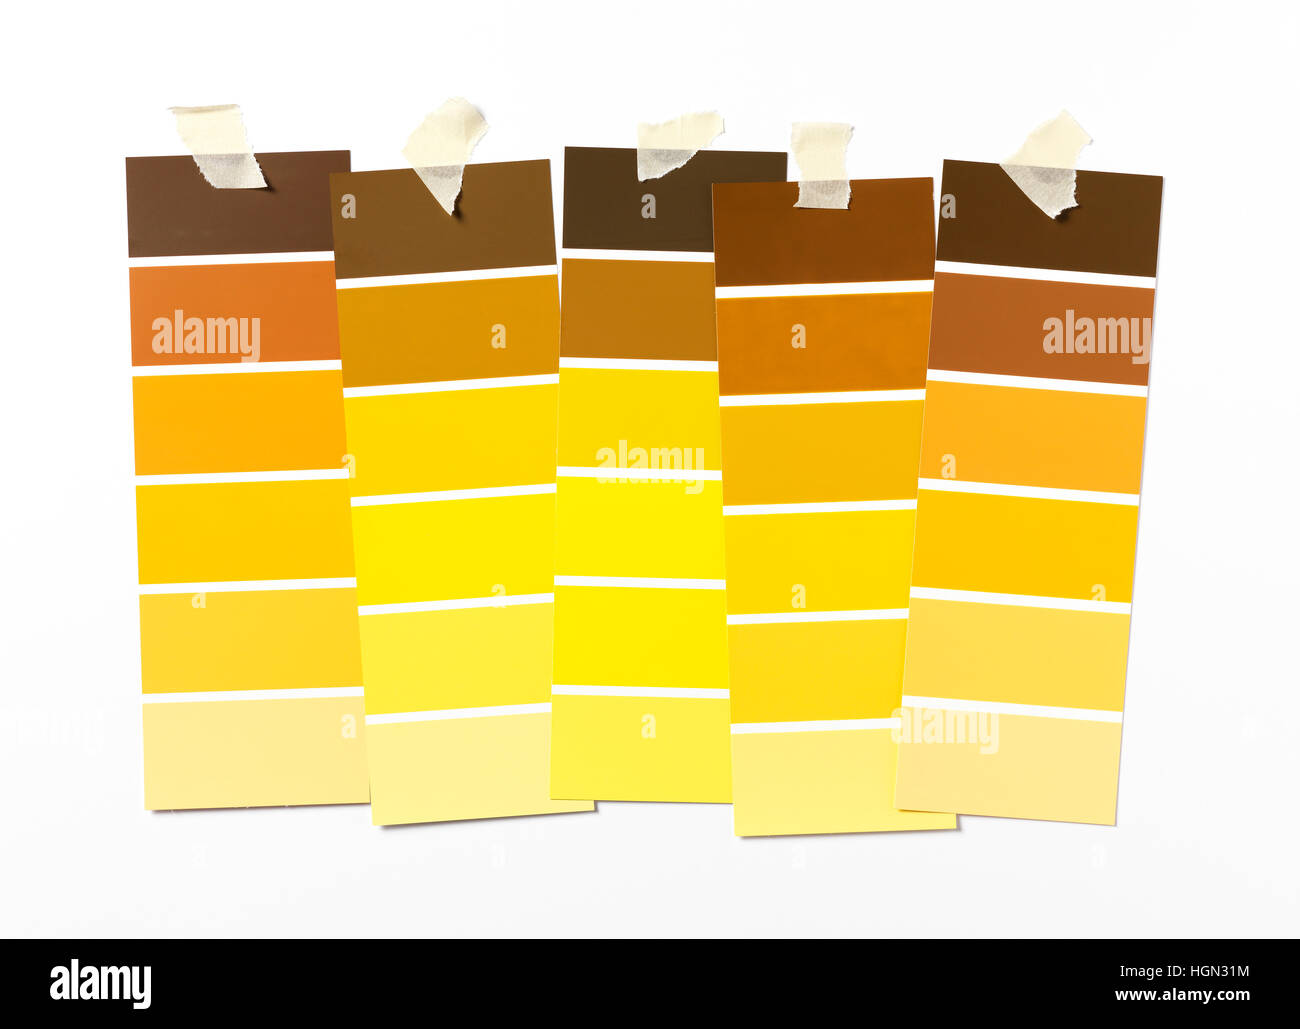 Yellow Paint swatch on wall Stock Photo: 130770464 - Alamy